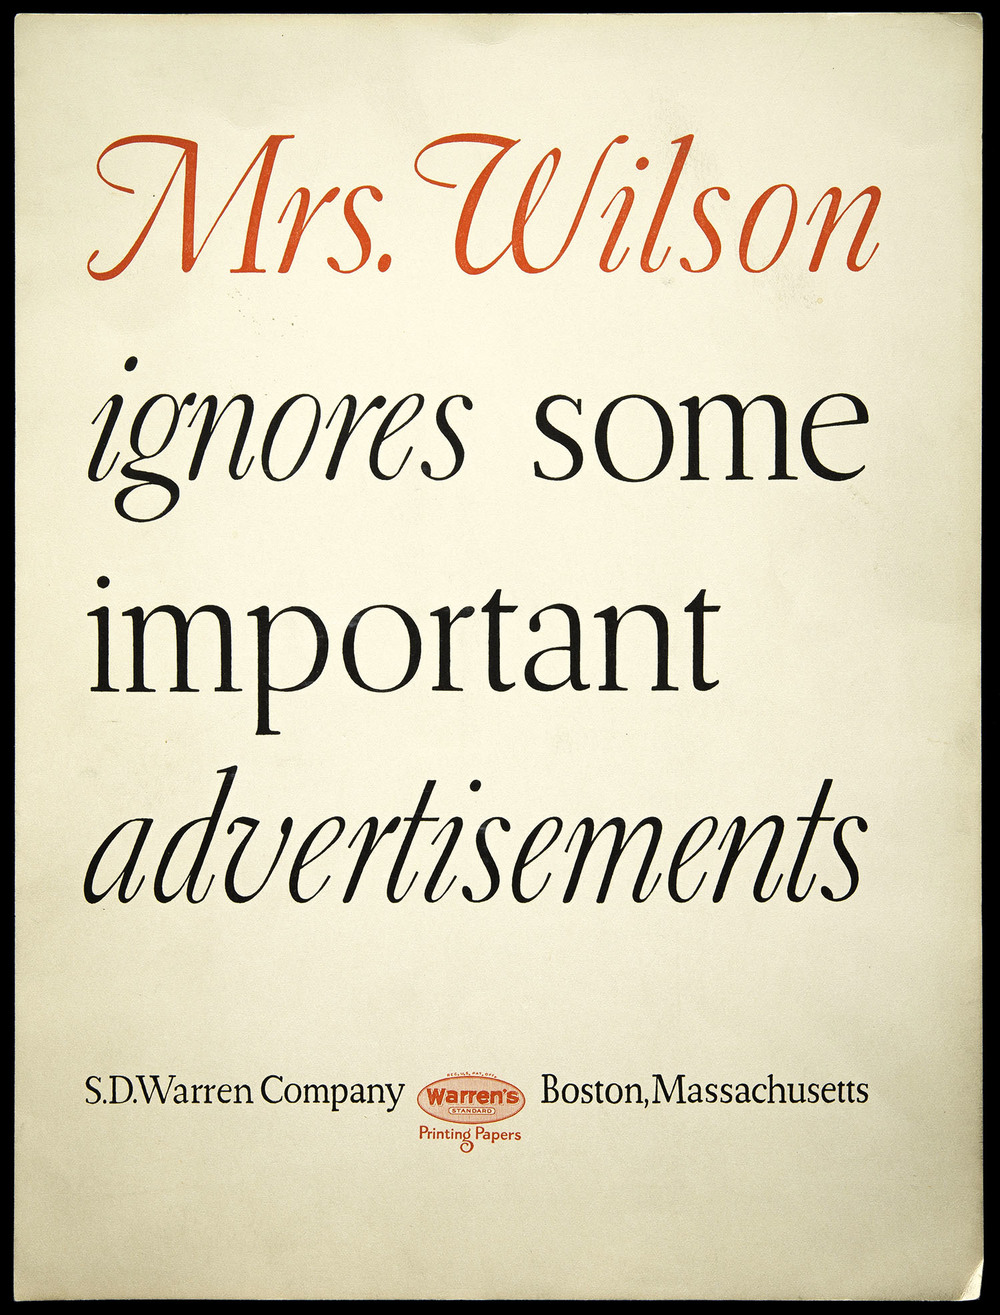 A full page advertisement for Warren's Paper, circa 1928, 21 x 28 cm